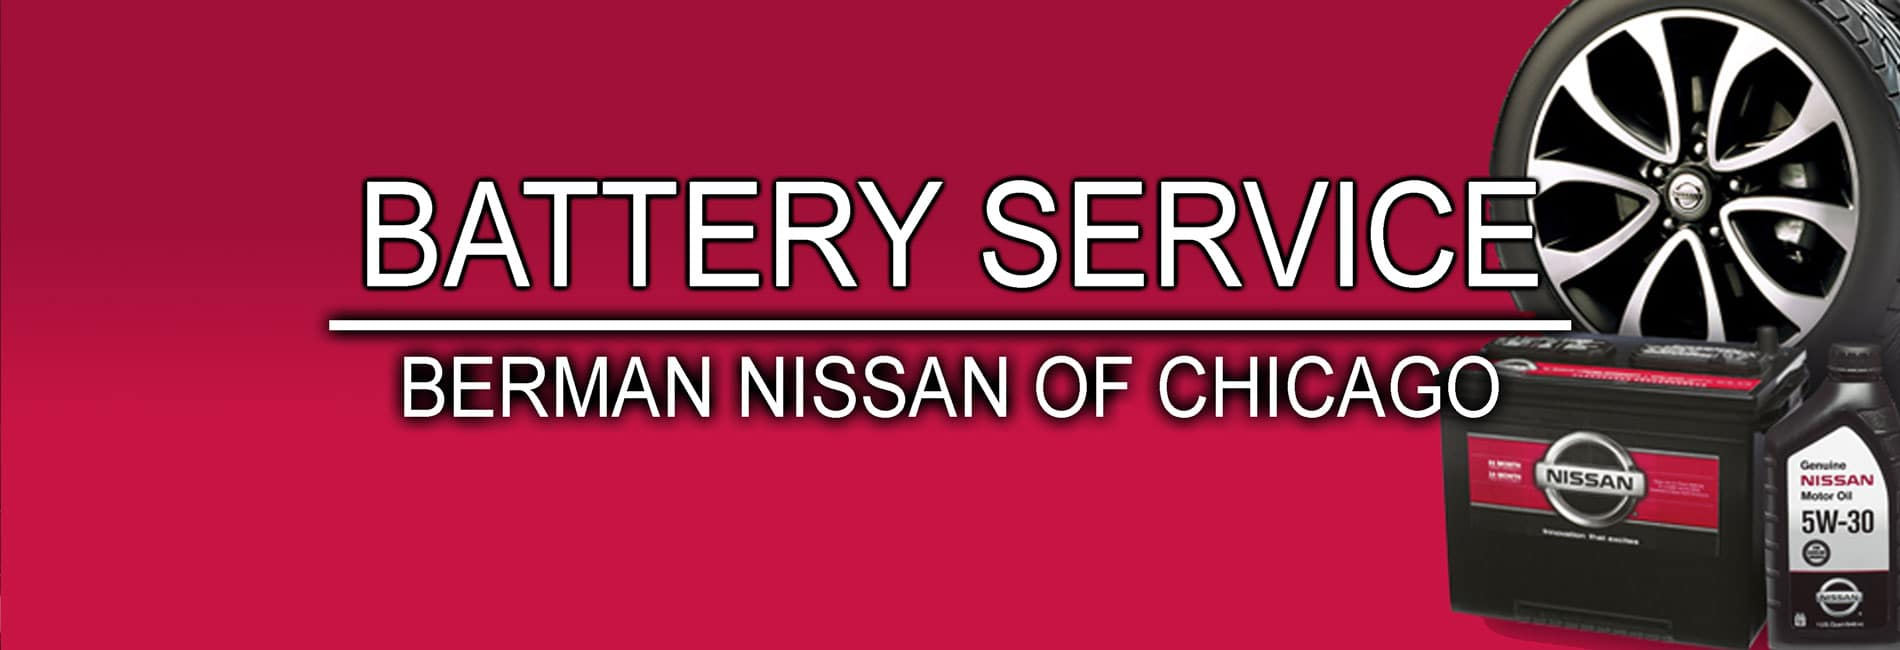 Chicago Battery Service at Berman Nissan of Chicago